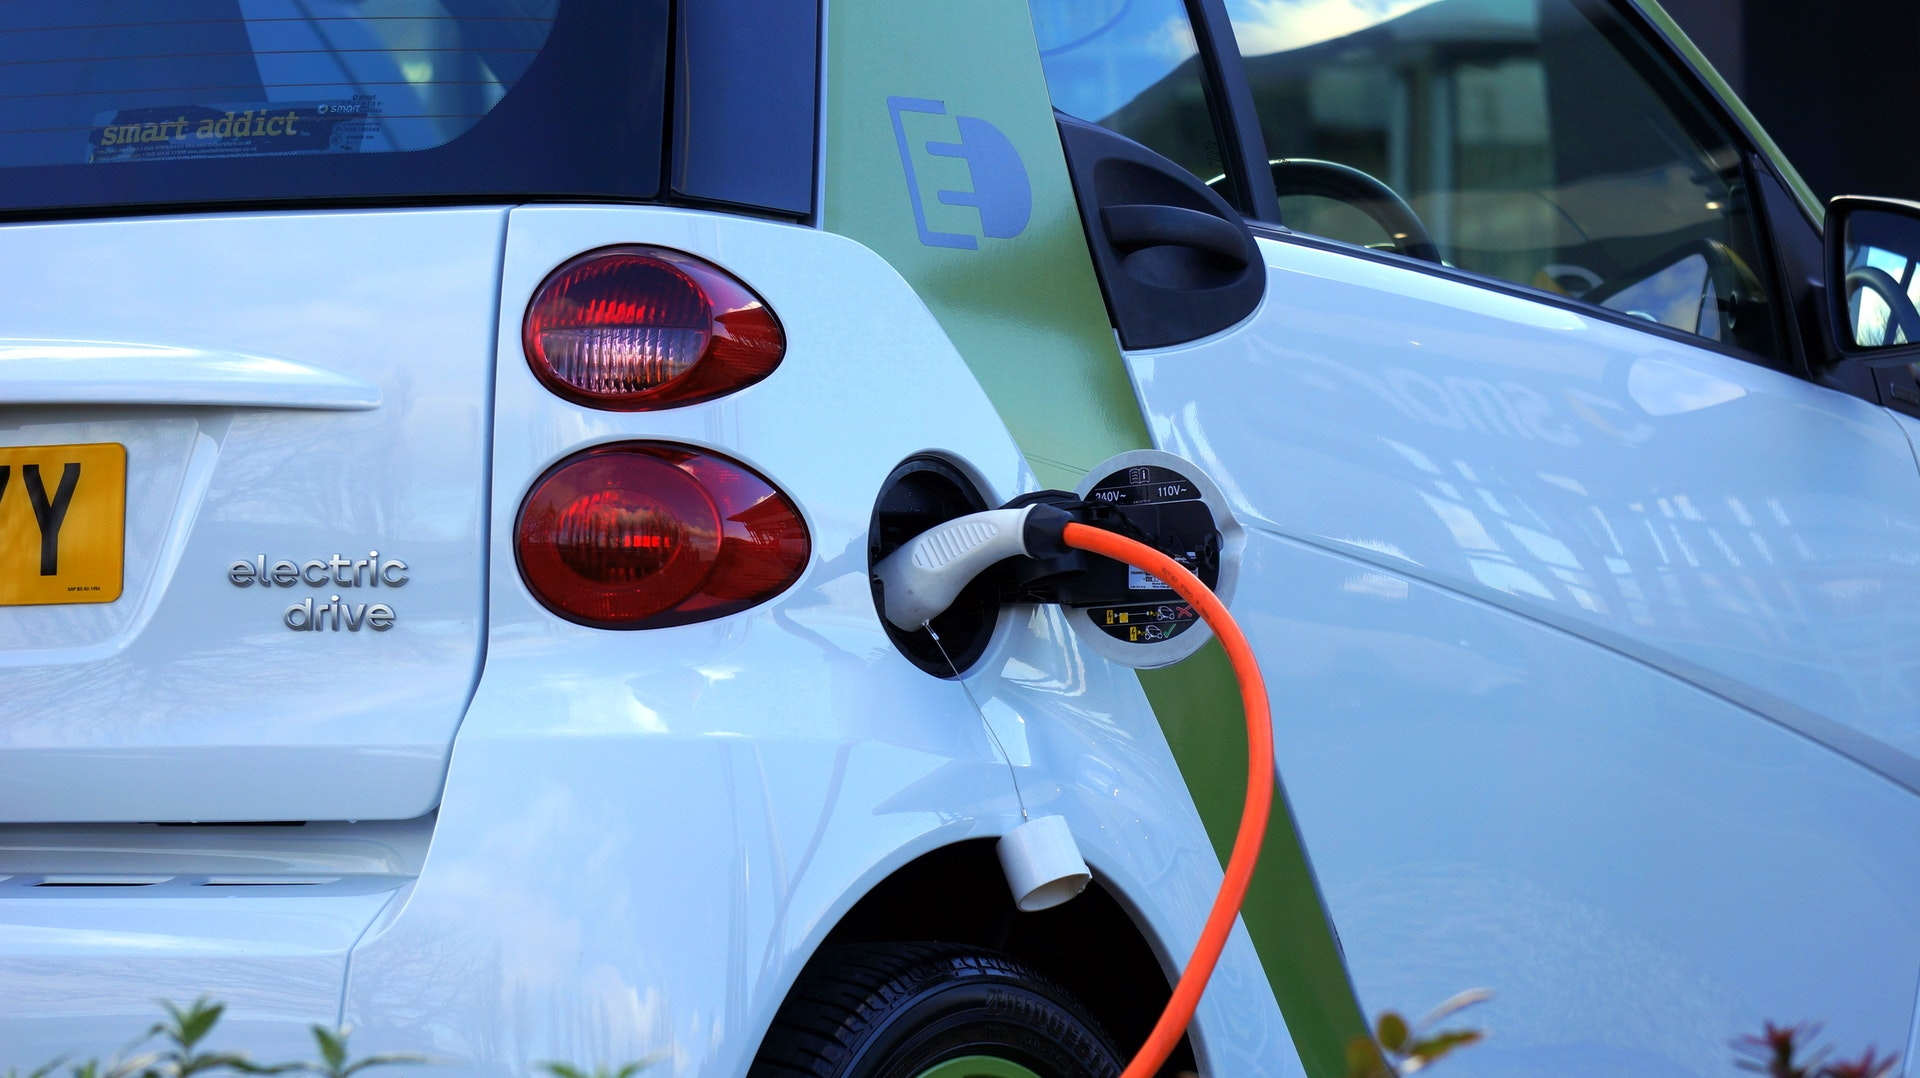 The future of the electric vehicle market is too enticing for investors to avoid.